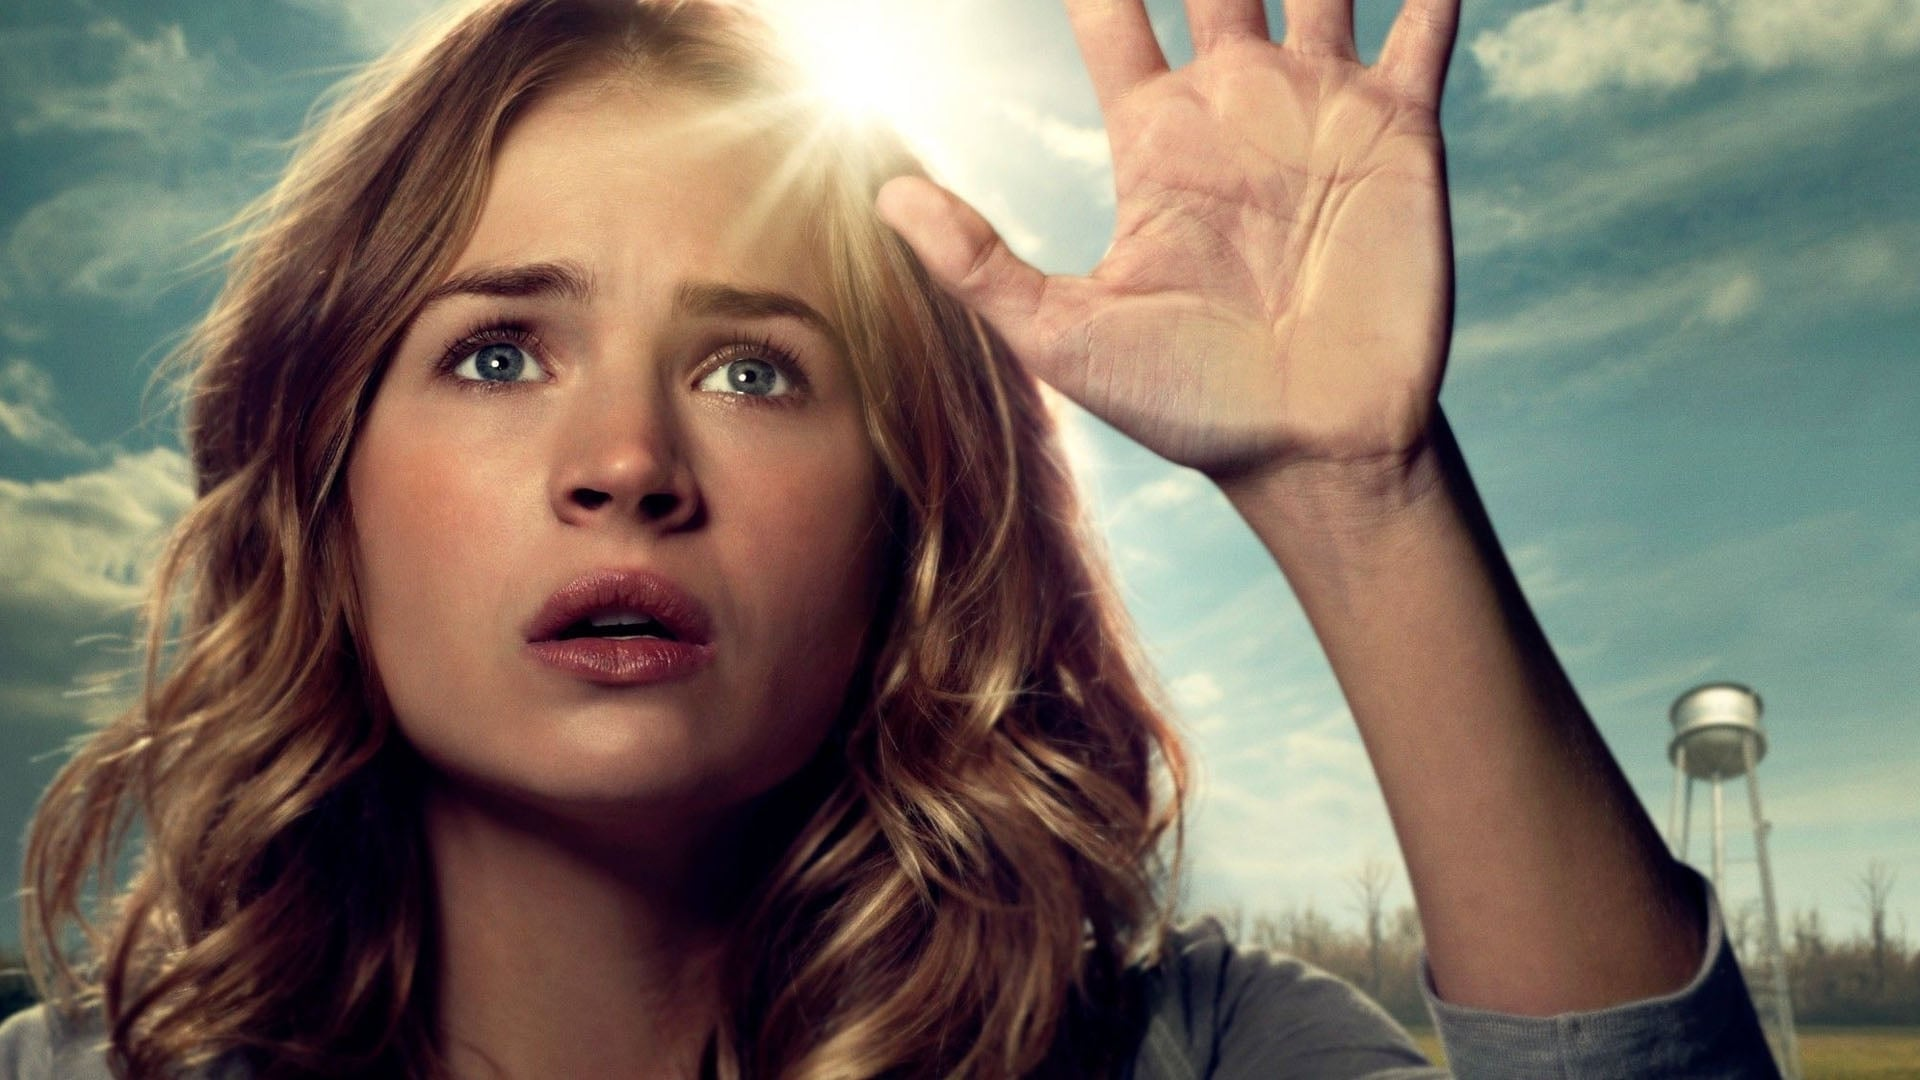 CBS announced premiere date 'Under the Dome' and a new show